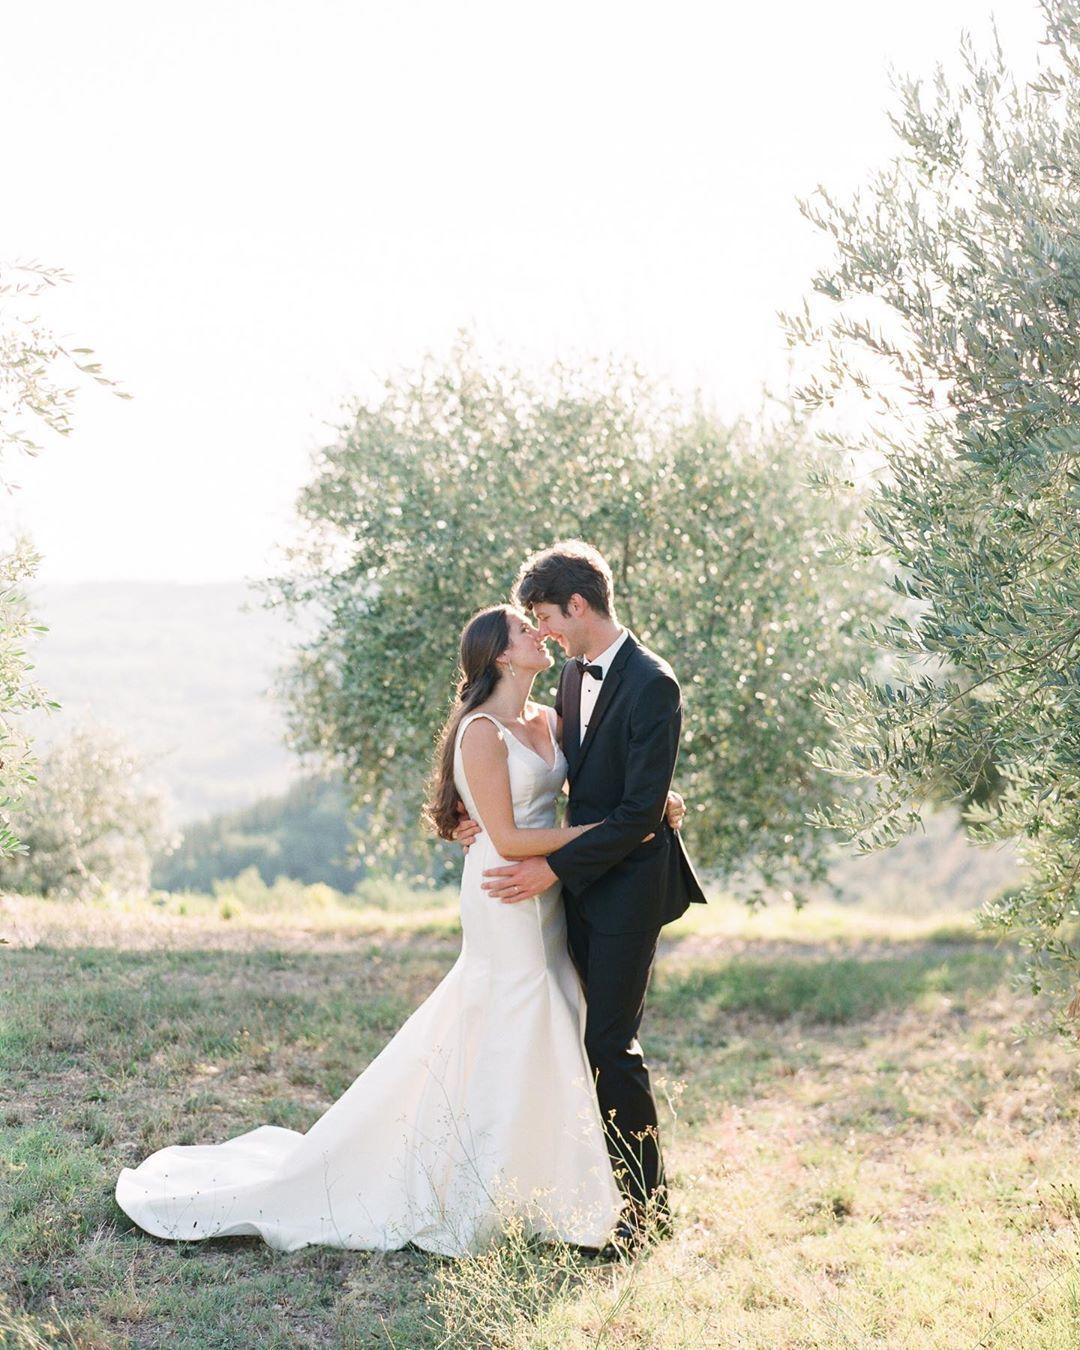 Be still, my beating heart! Destination weddings in Tuscany are all I can think about and this local planner-meets-tour guide was just what the doctor ordered! #tuscanwedding #italywedding #destinationwedding